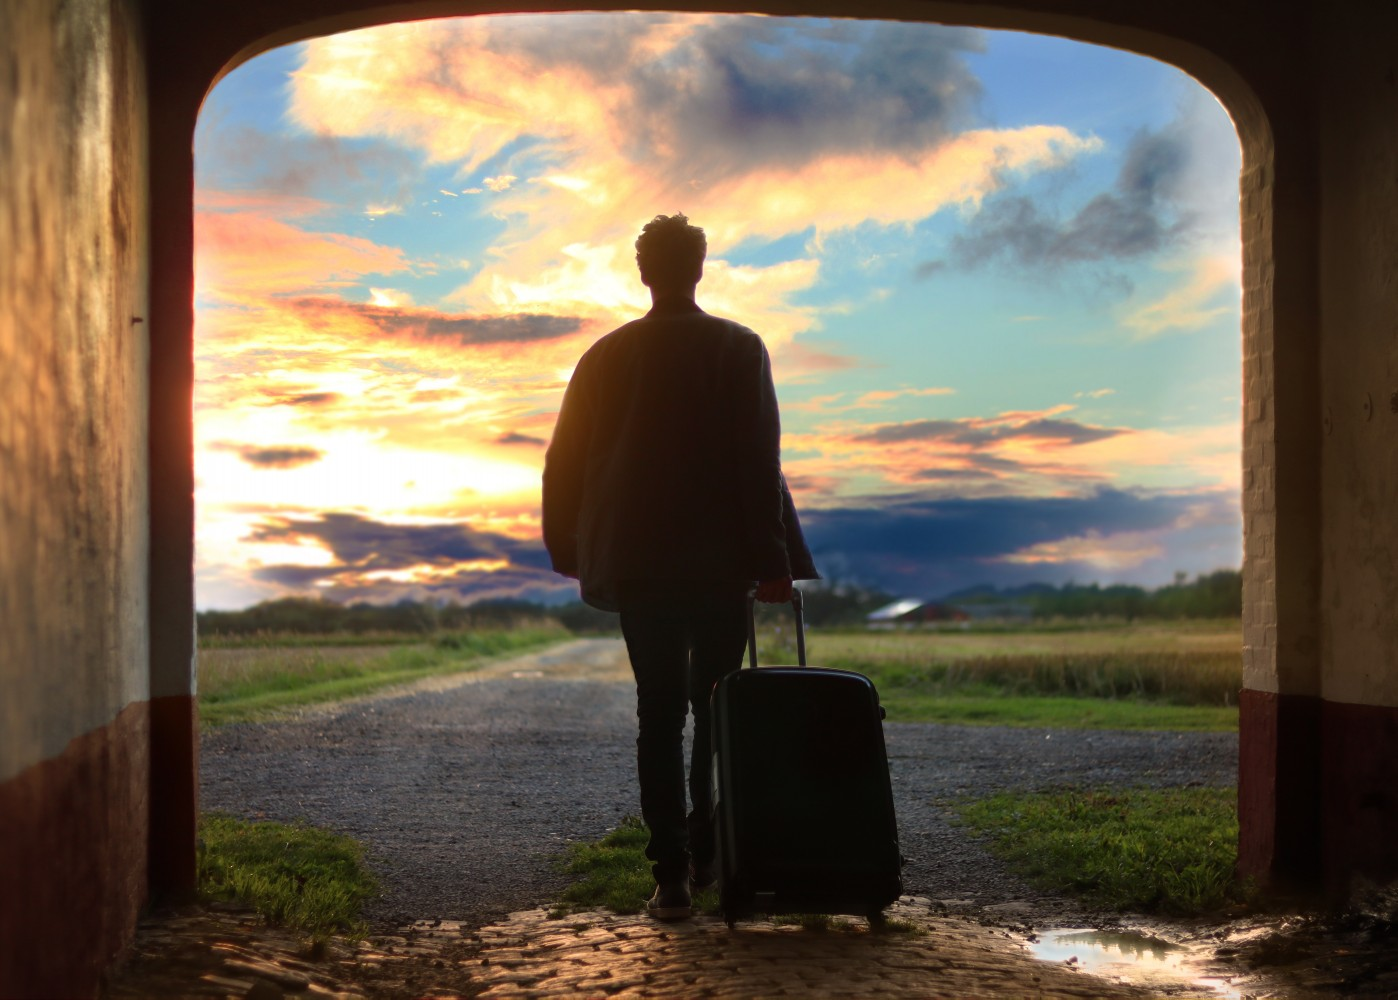 11 LESSONS FROM TRAVELING LIGHT